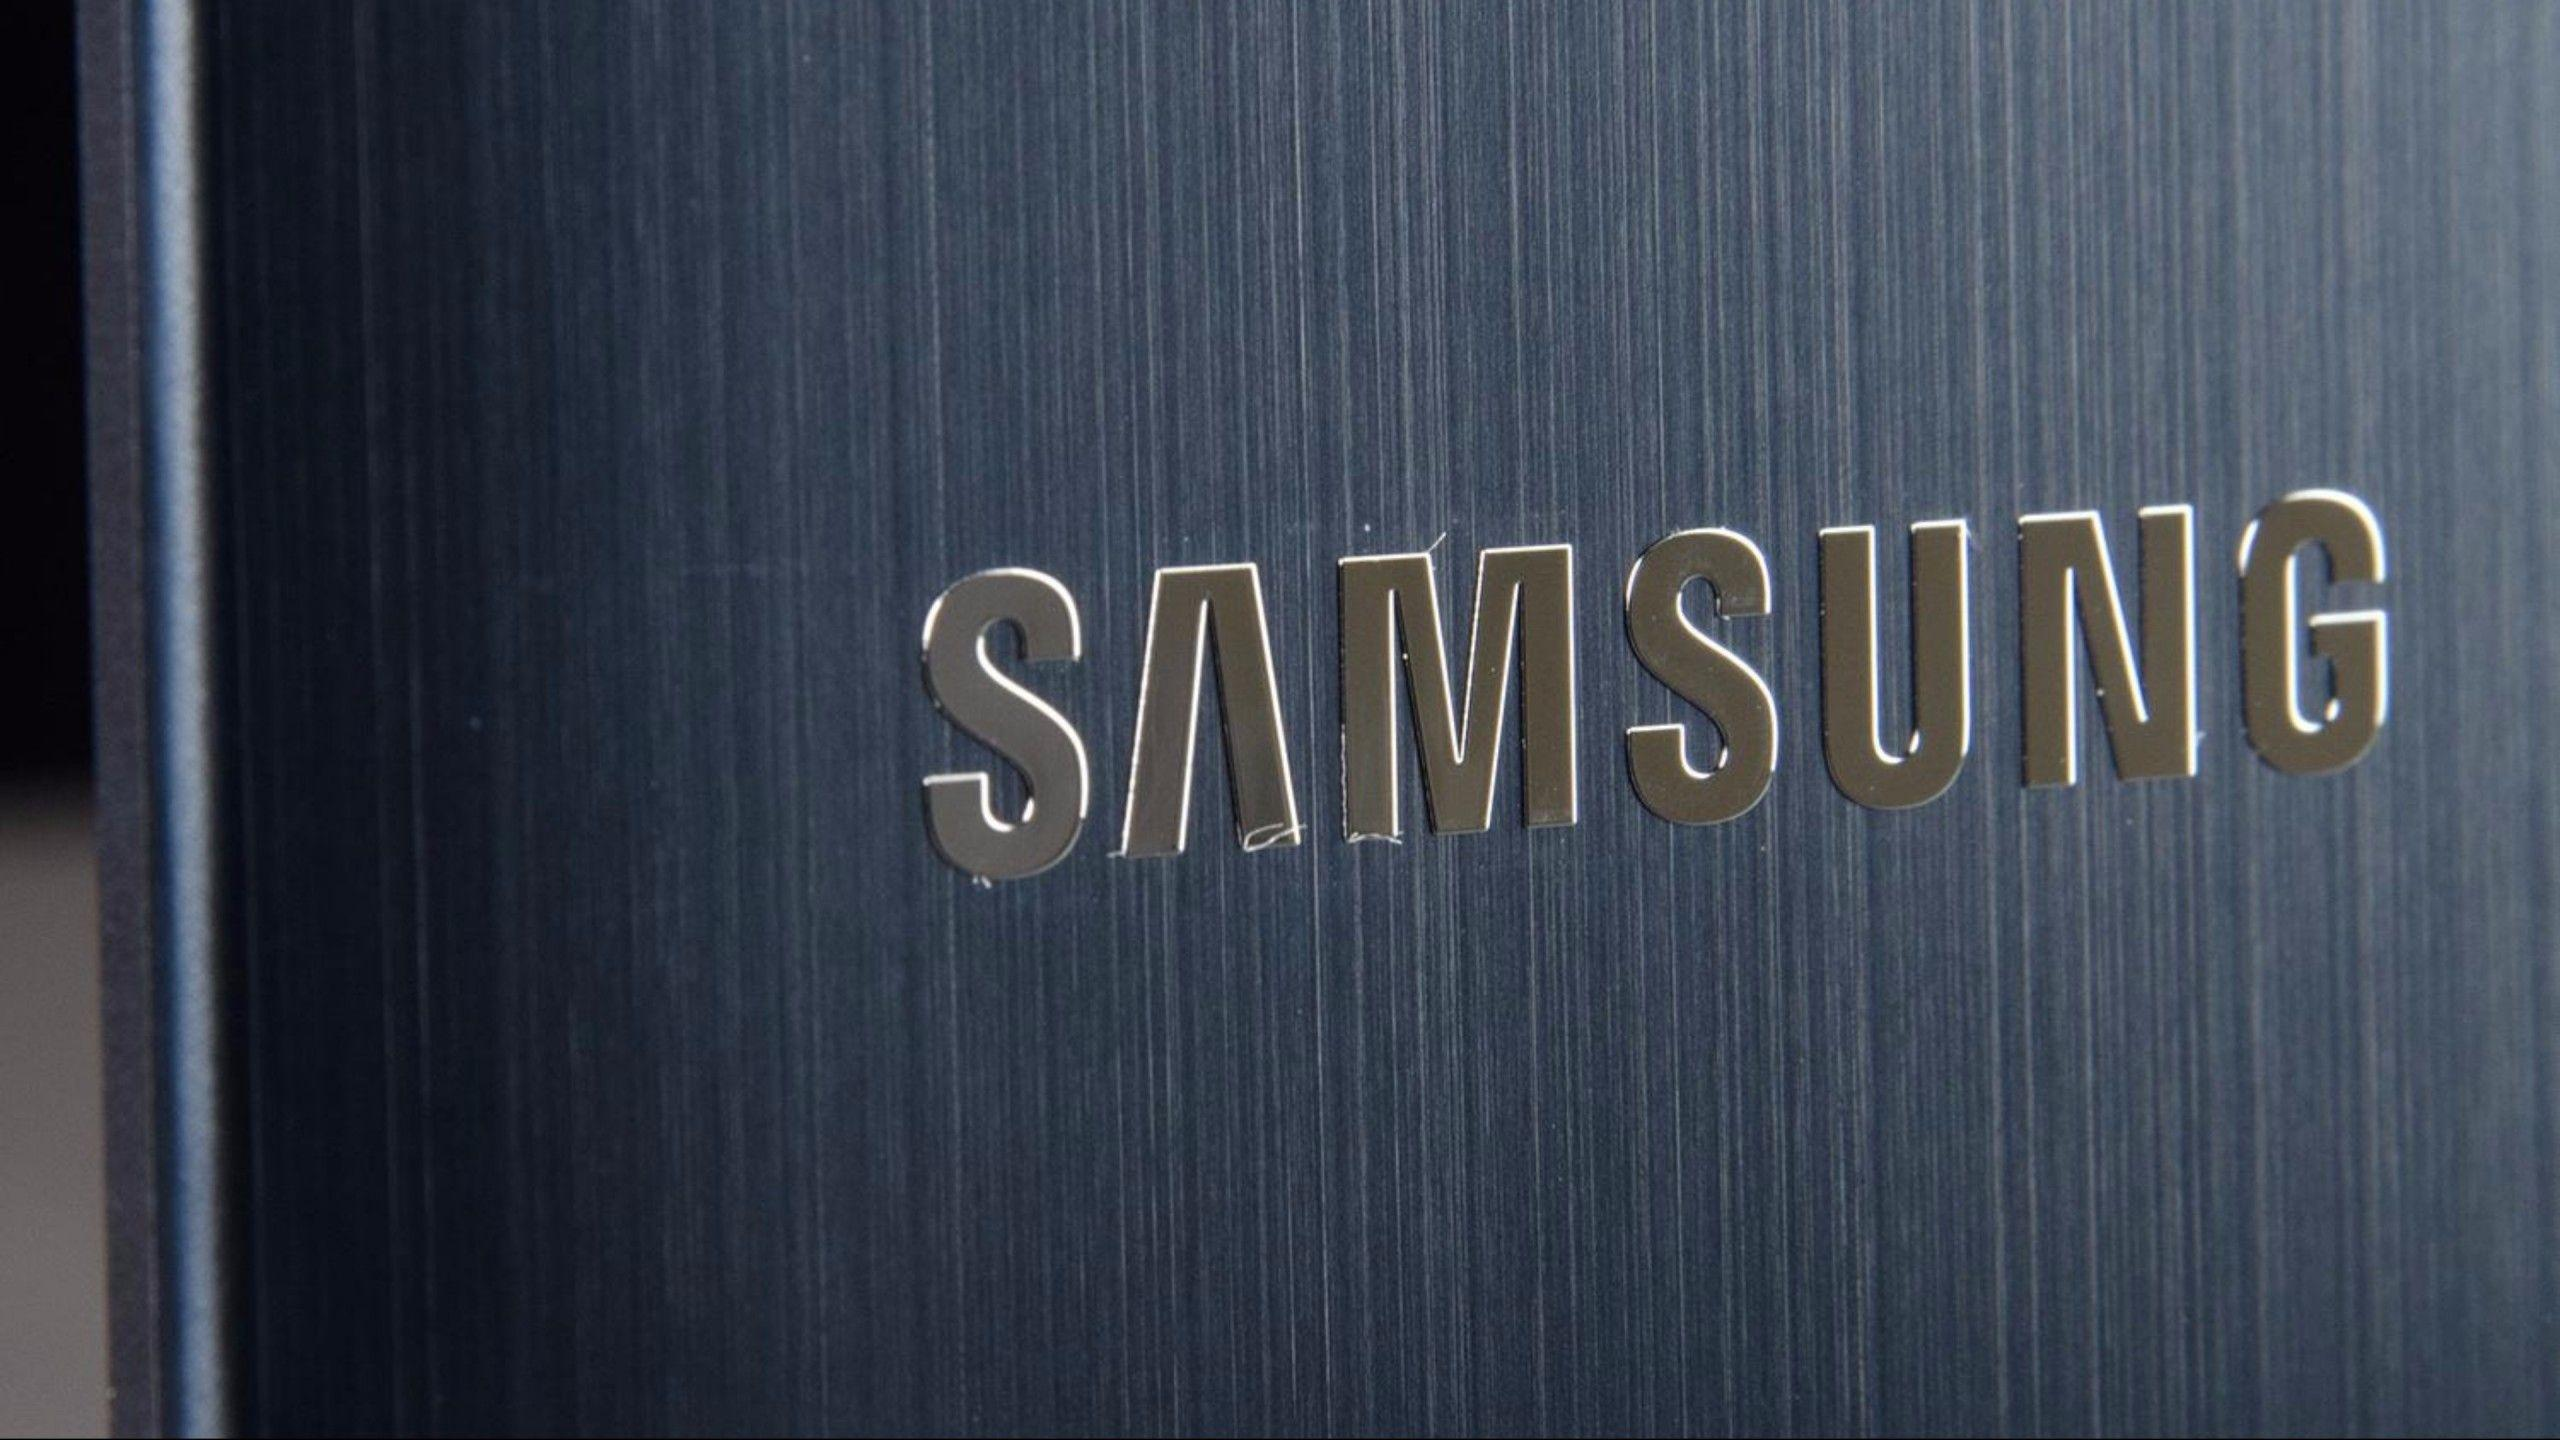 Check spelling or type a new query. Samsung LED TV Logo Wallpapers - Wallpaper Cave